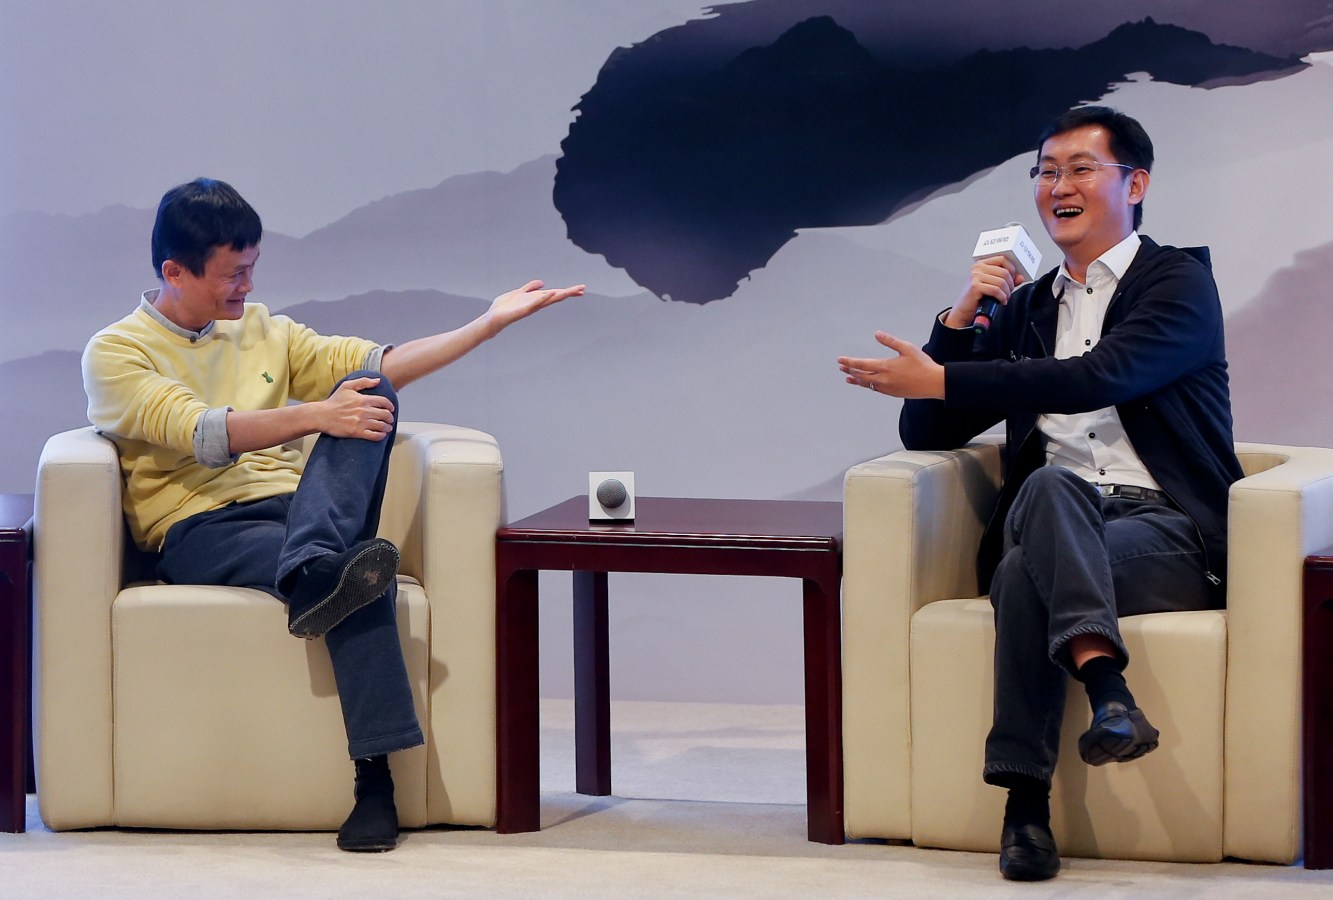 Alibaba and Tencent are getting ahead of Beijing's sweeping internet reforms